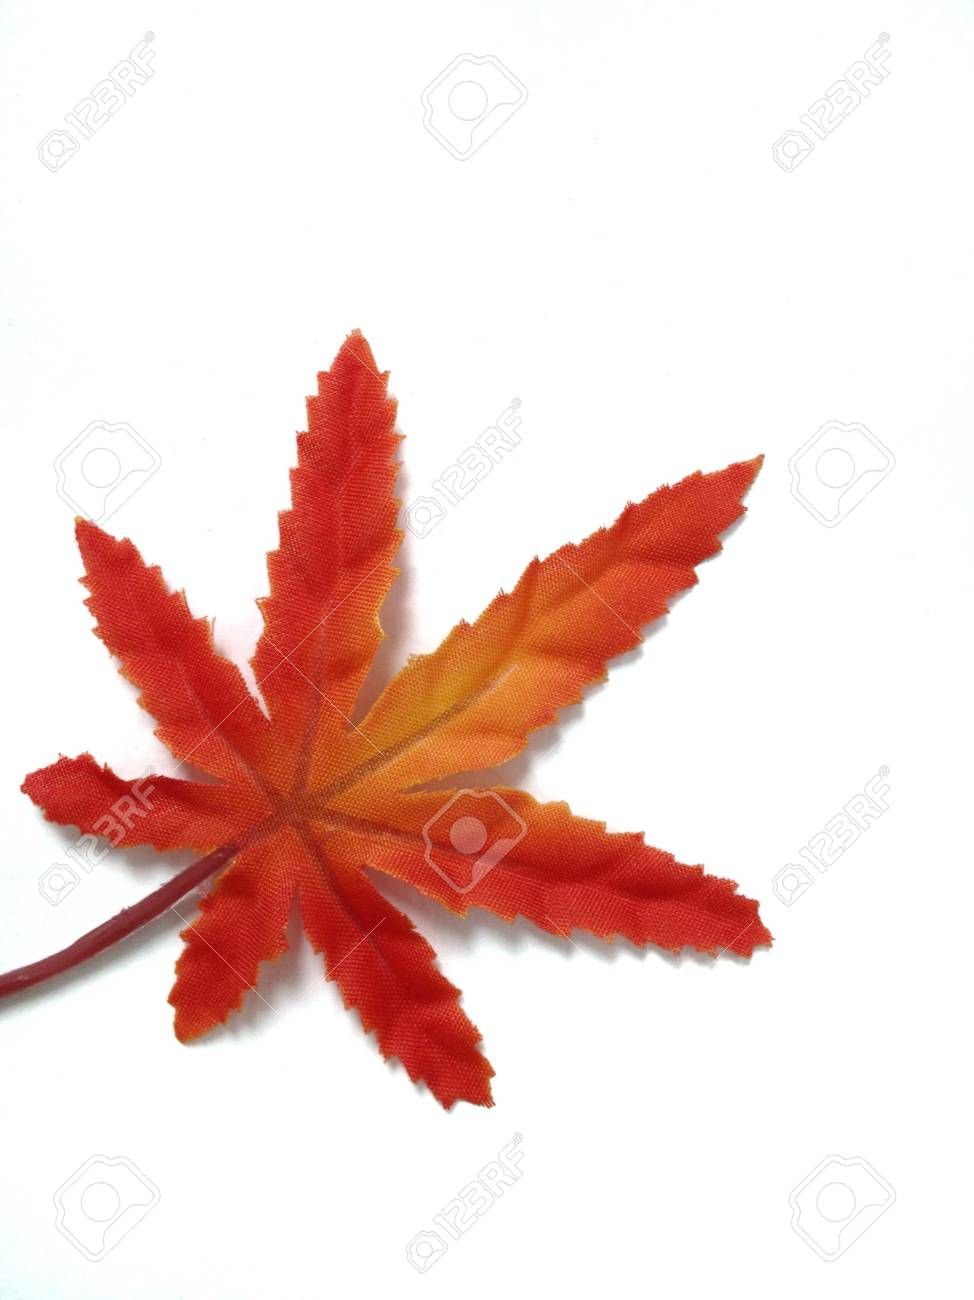 Red maple leaf Stock Photo - 21212882